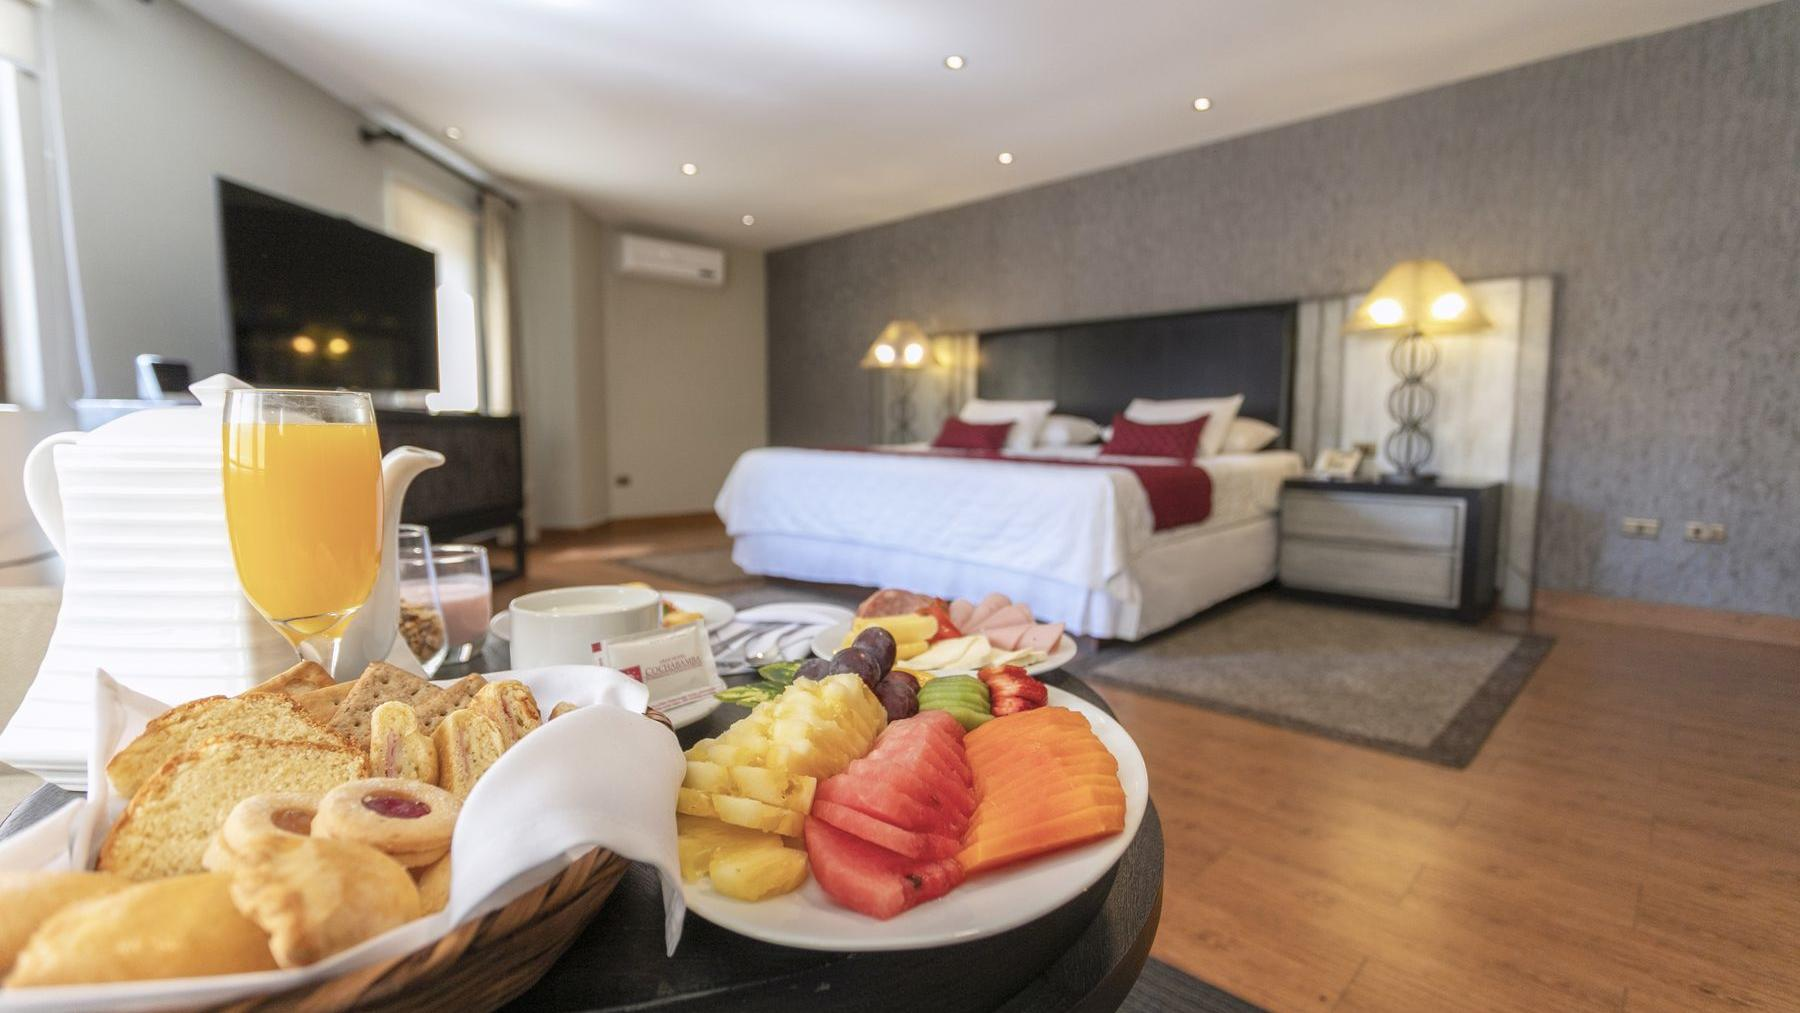 King Bed room with Breakfast